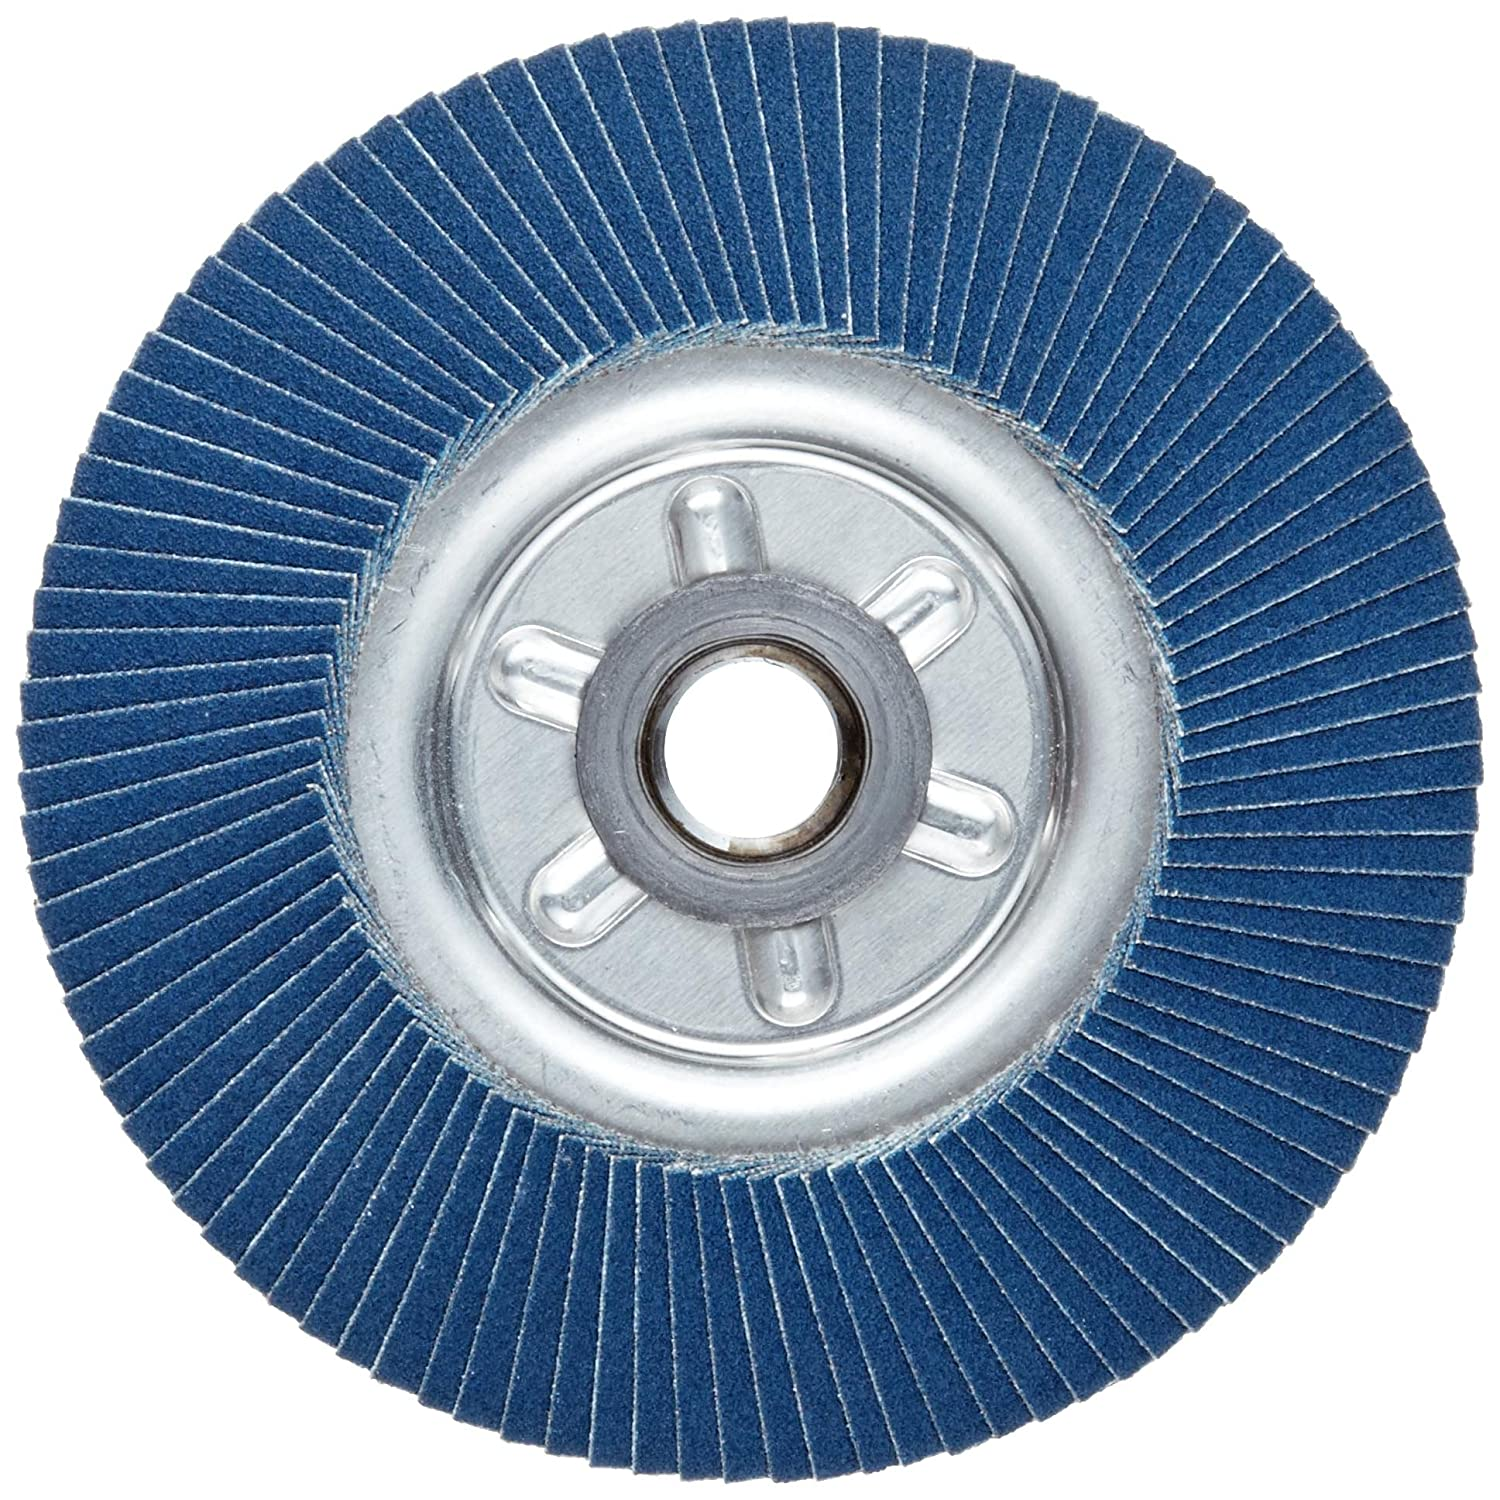 Zirconia Alumina Weiler Tiger Abrasive Flap Disc Aluminum Backing 120 Grit Type 29 Pack of 1 Threaded Hole 4-1//2 Dia.